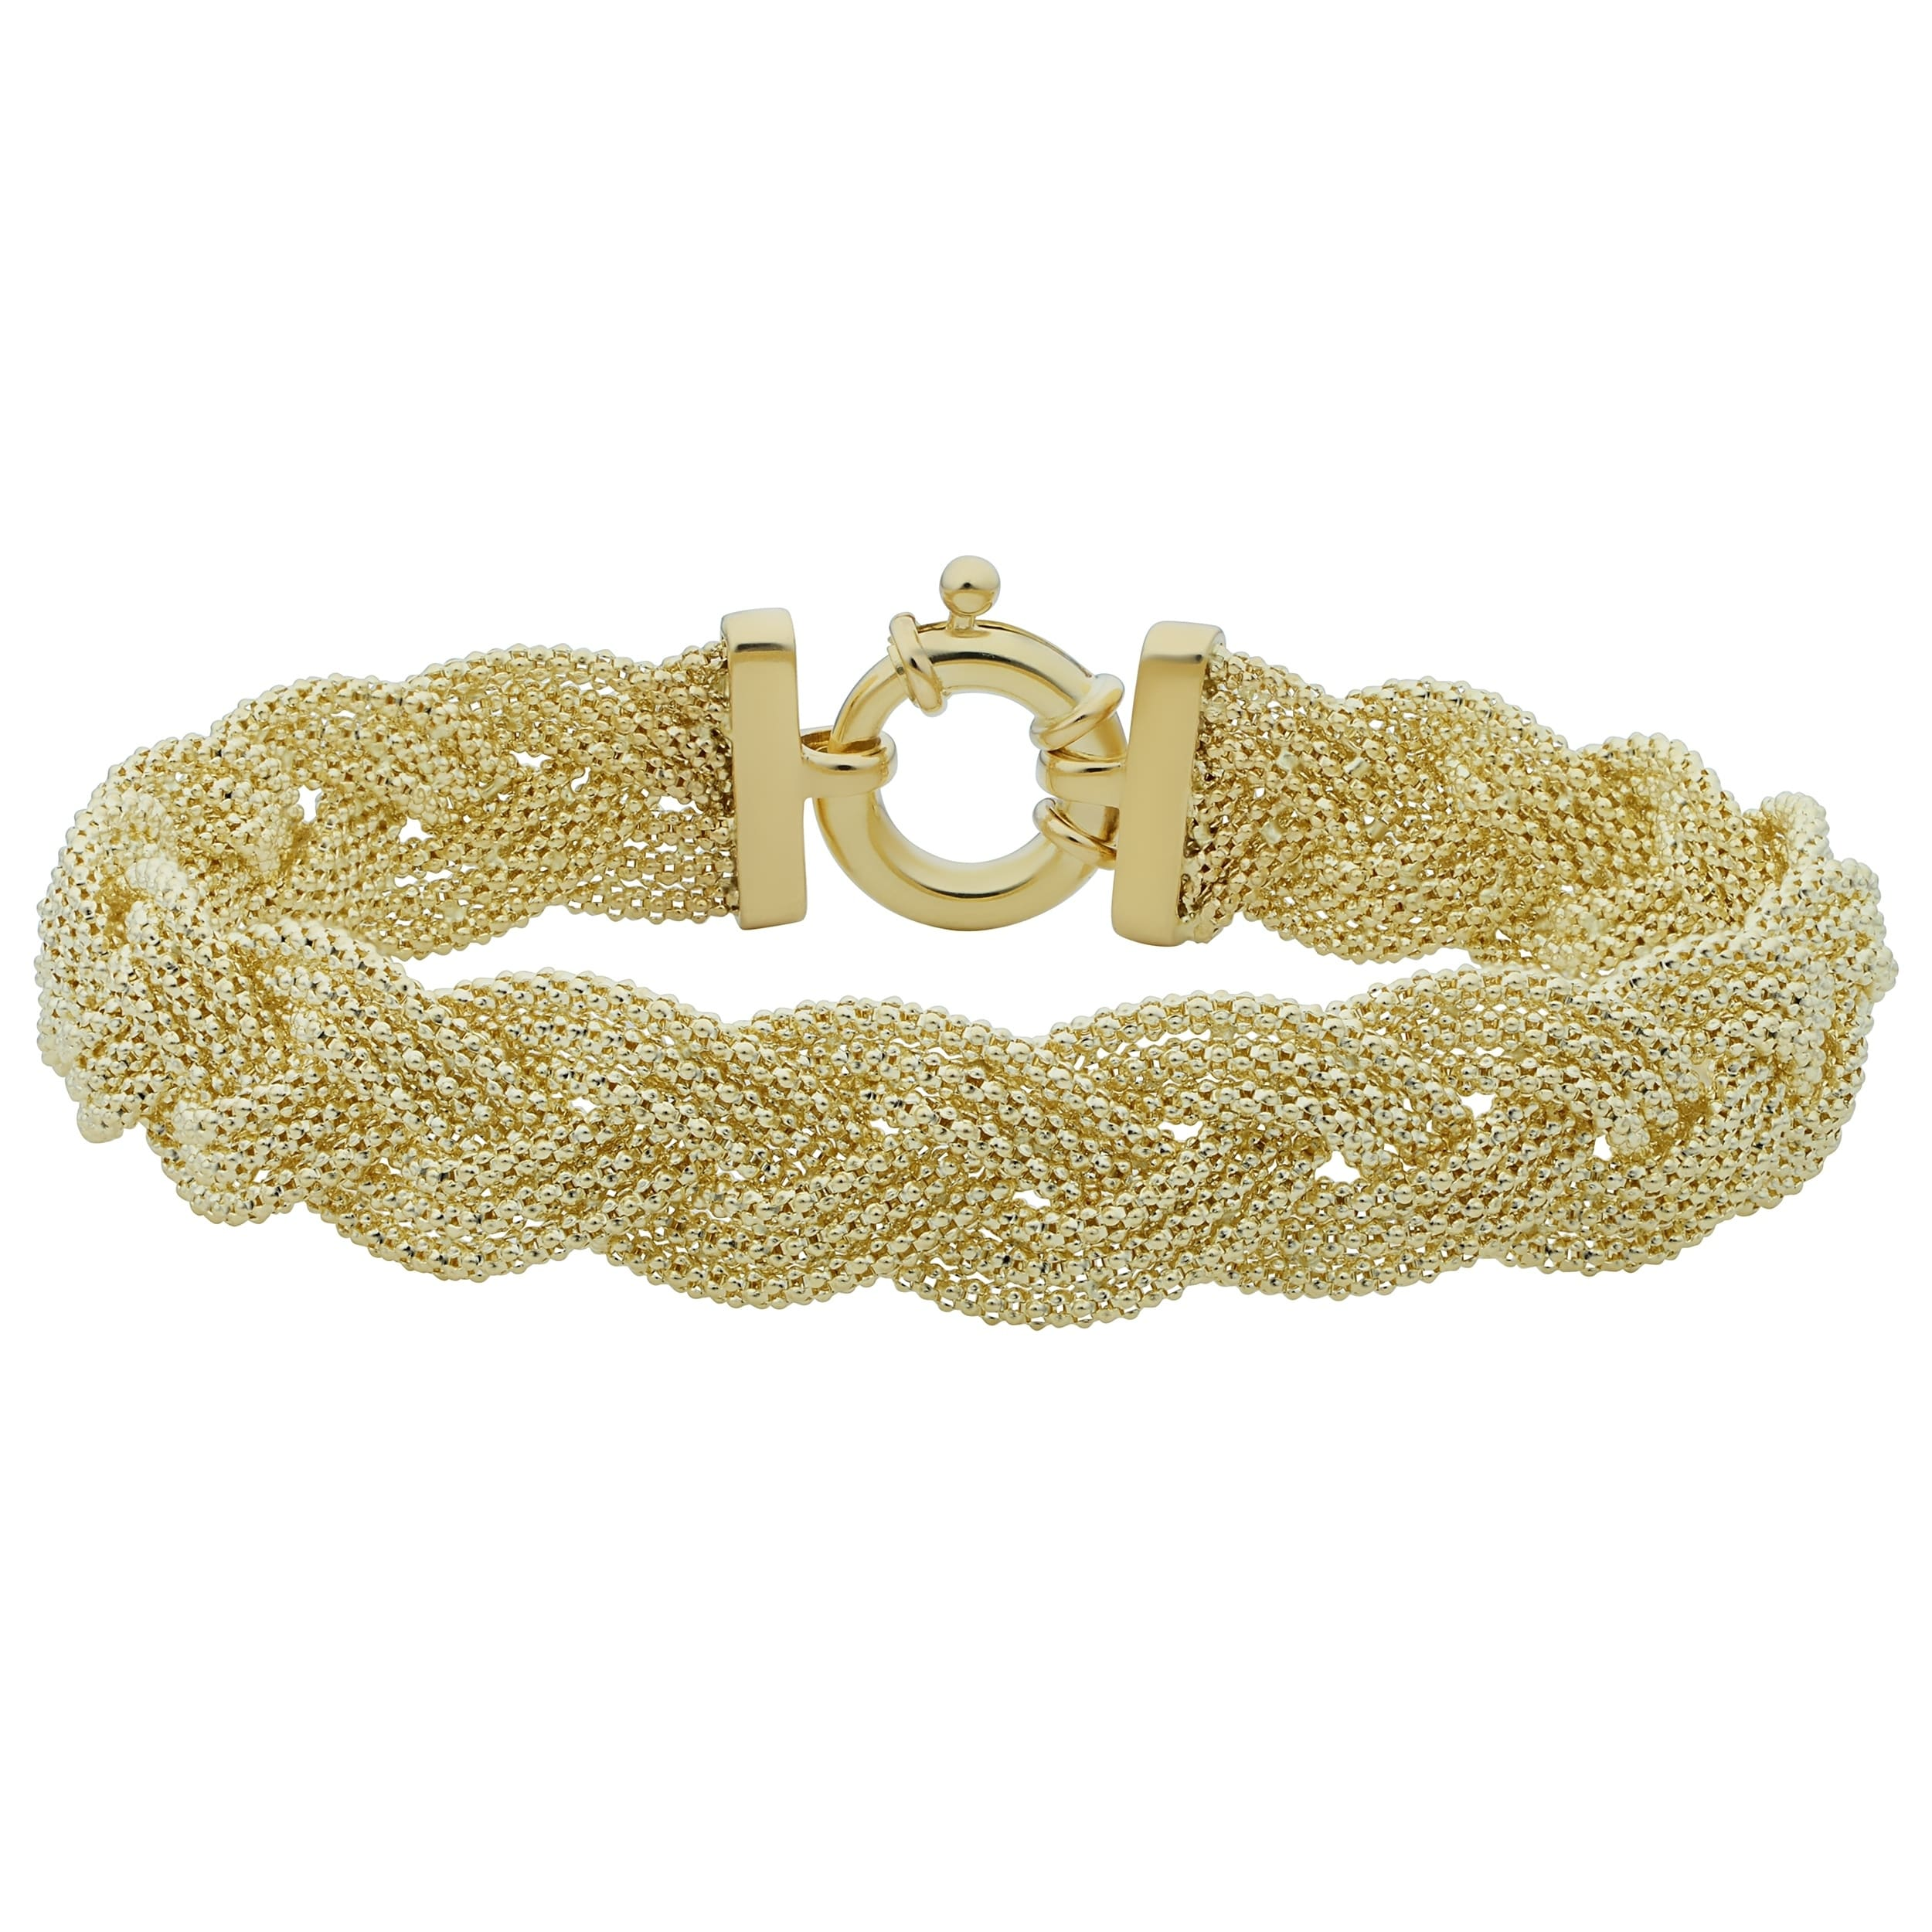 watches fremada jewelry chain product trople popcorn shipping overstock gold bracelet yellow bangle today bangles inch inches braided free